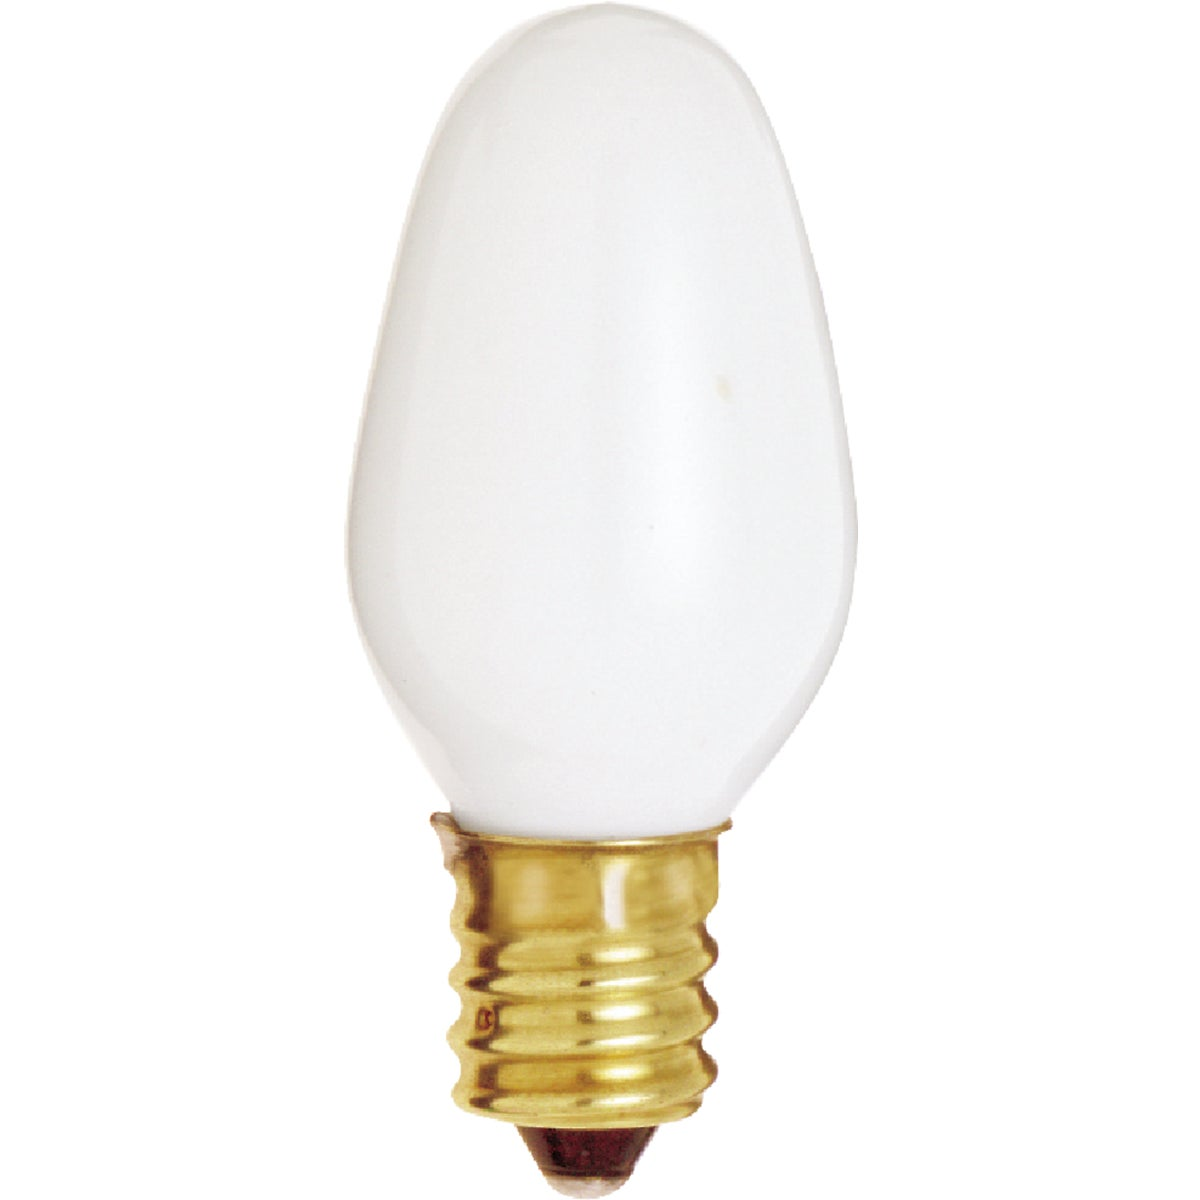 4W 4PK WHT NITELITE BULB - 20573 by G E Lighting